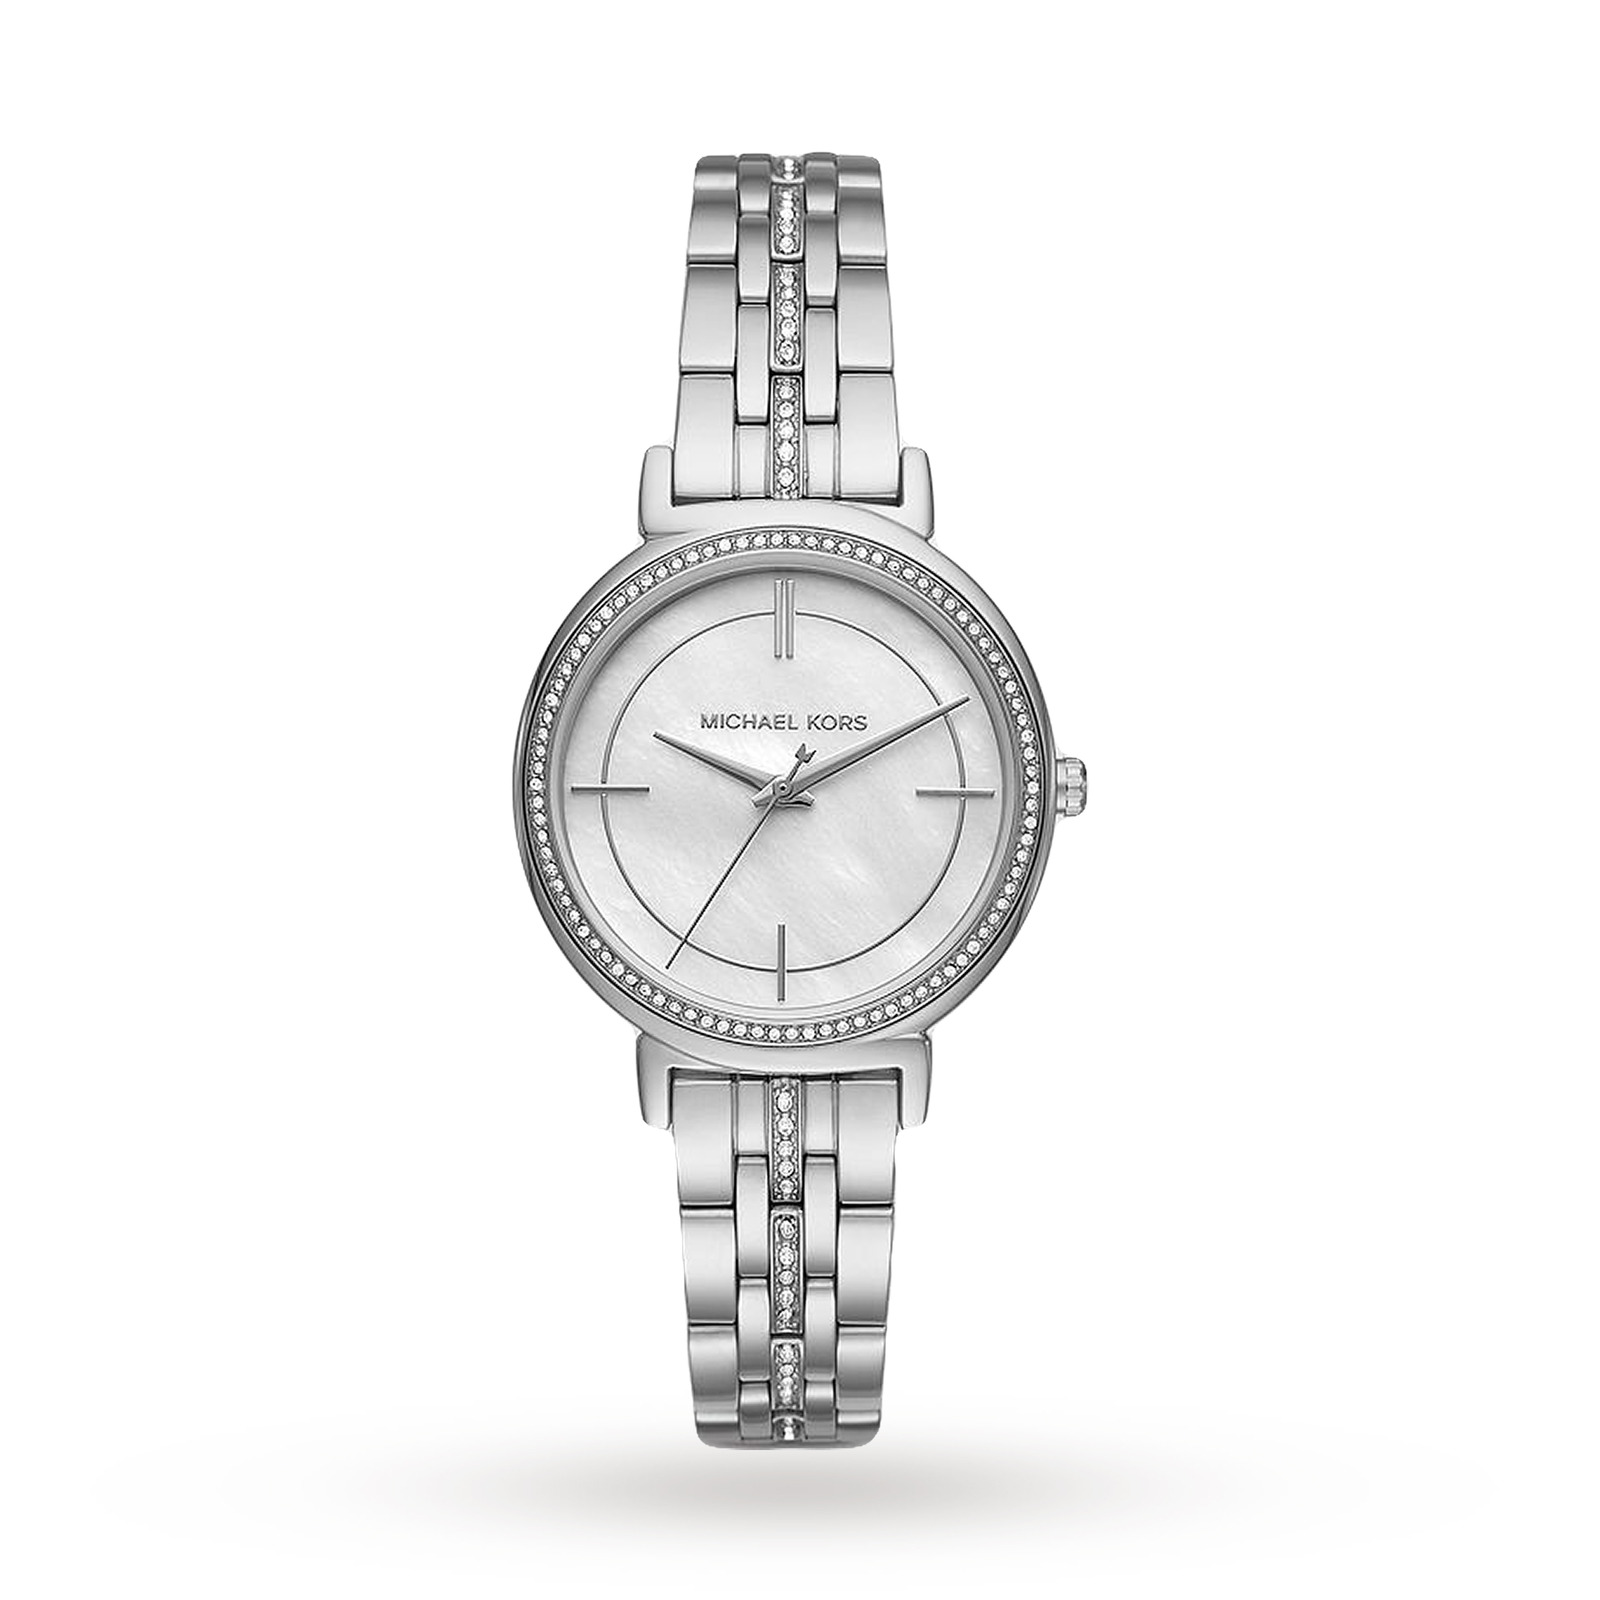 Michael Kors Cinthia Stainless-Steel Three-Hand Watch